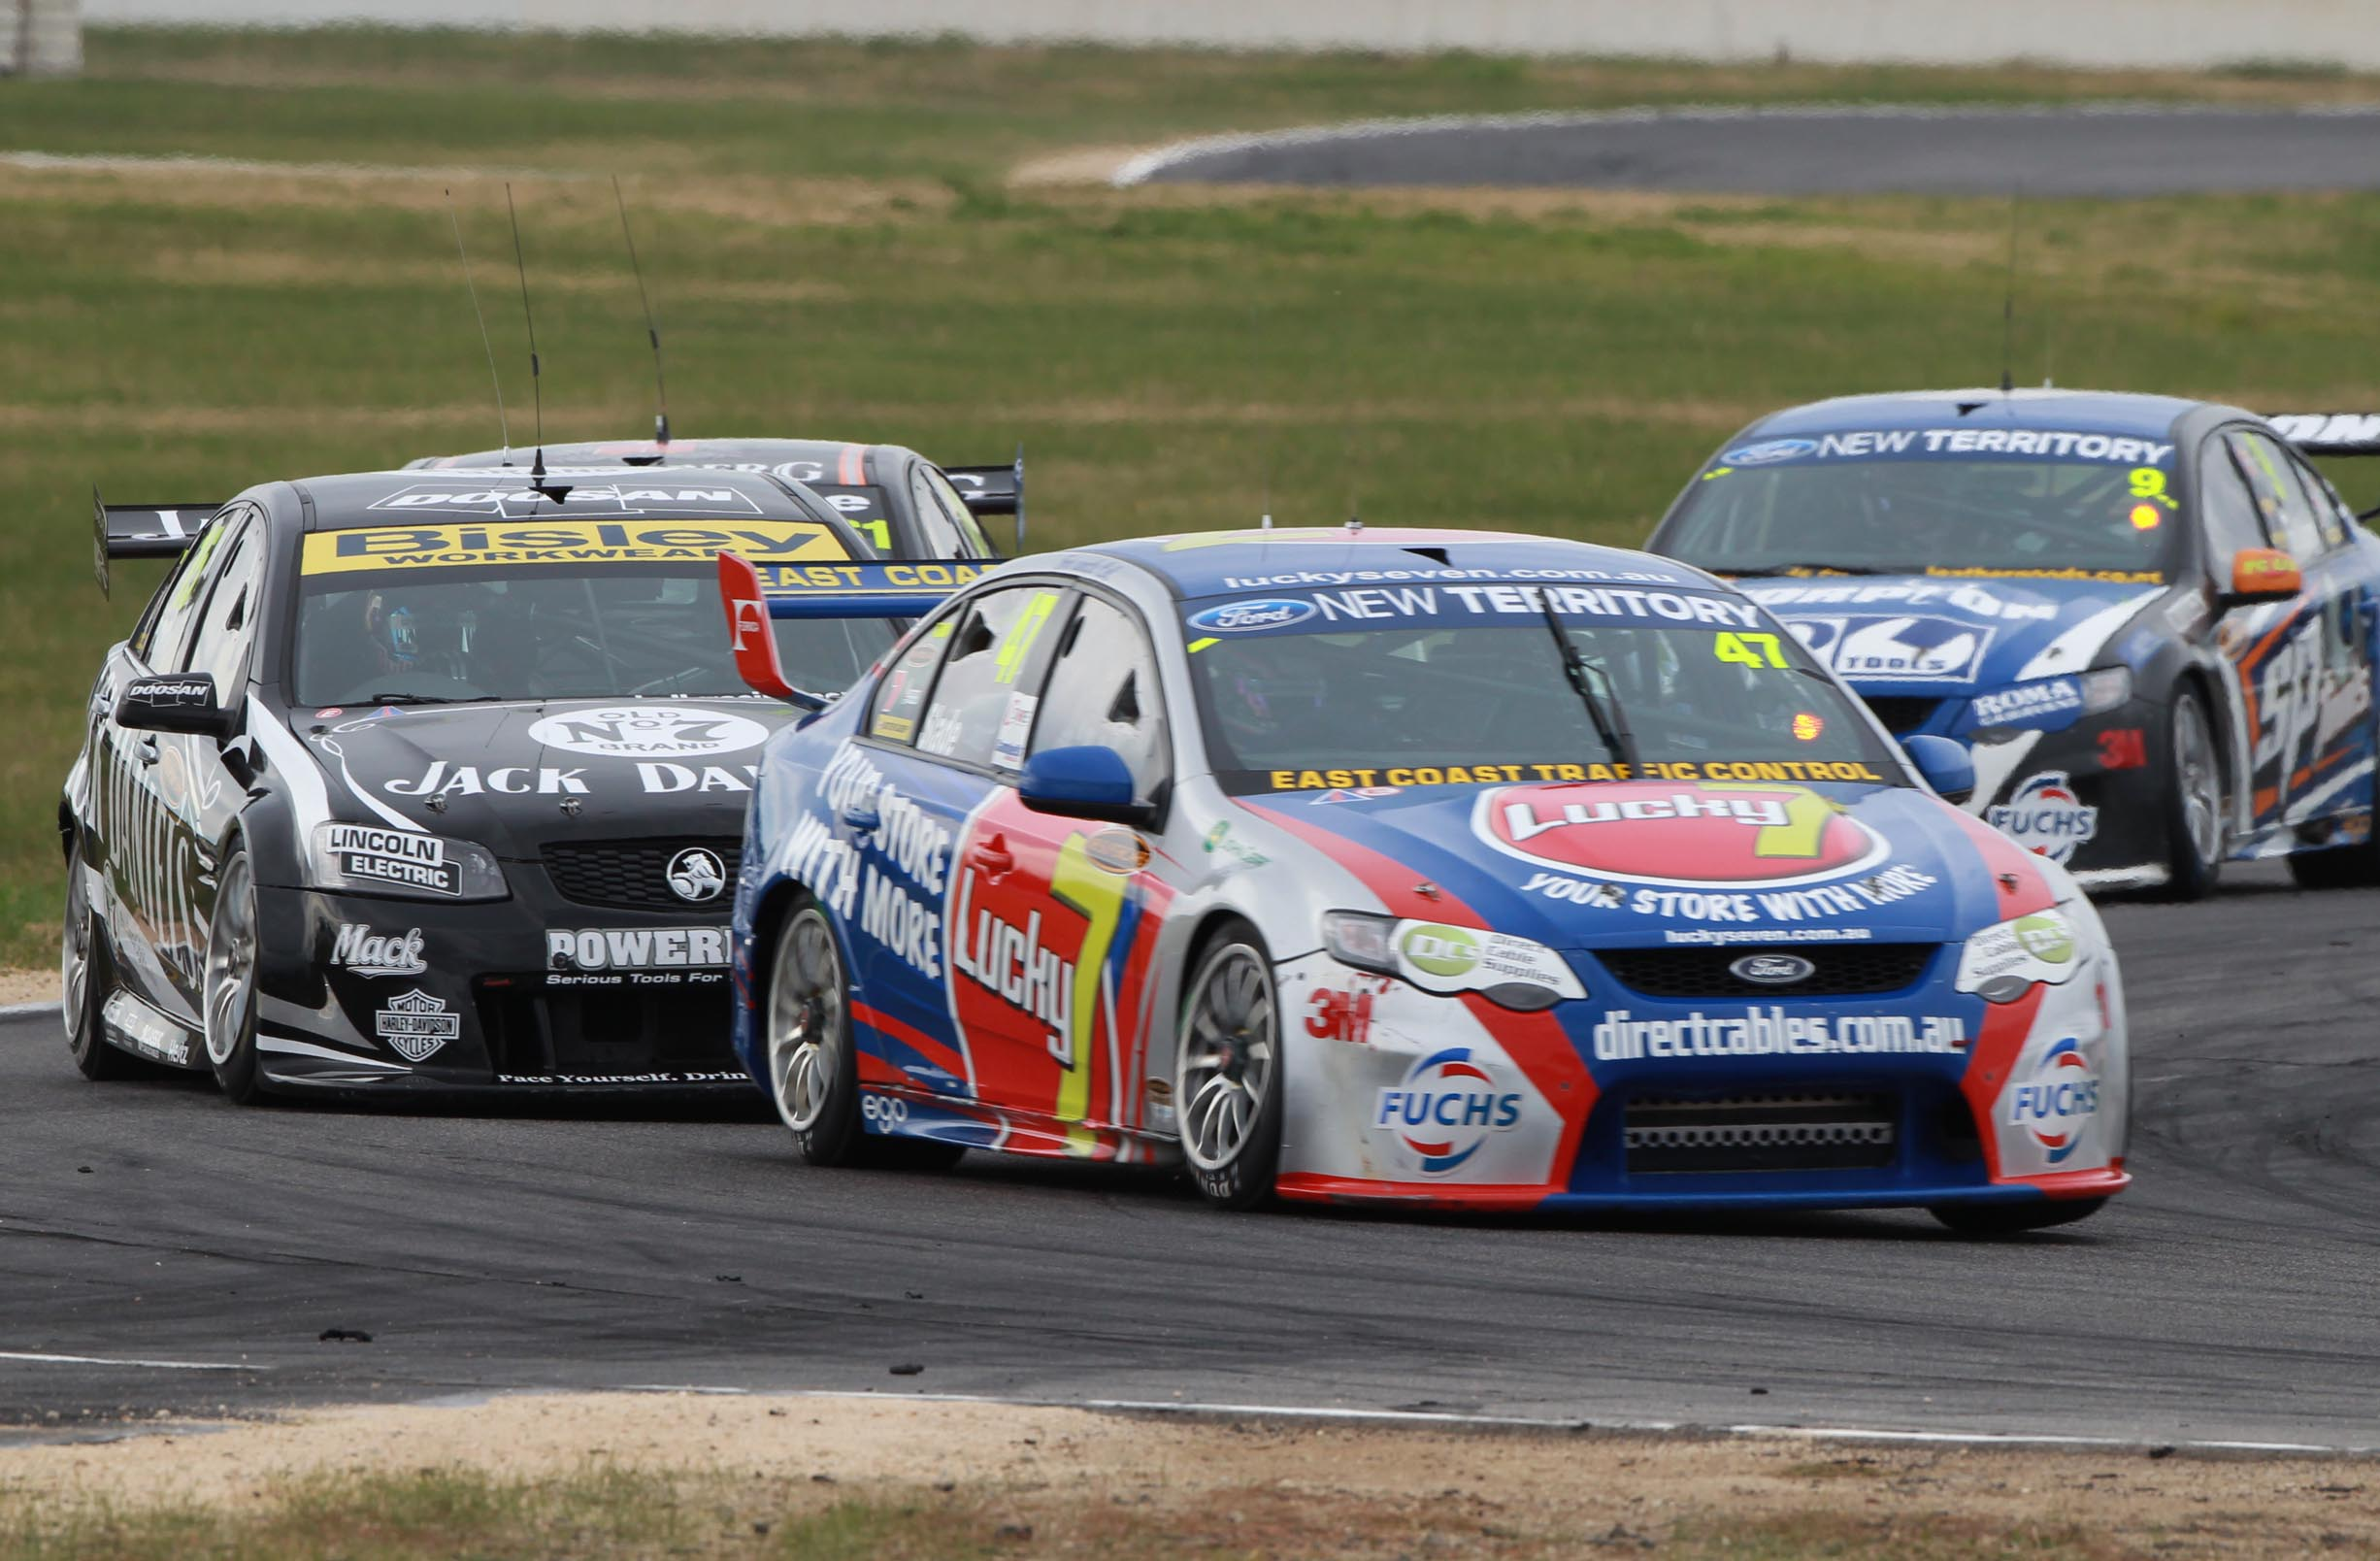 Aussie V8 Supercars race racing v 8 g wallpaper 2452x1608 132136 2452x1608